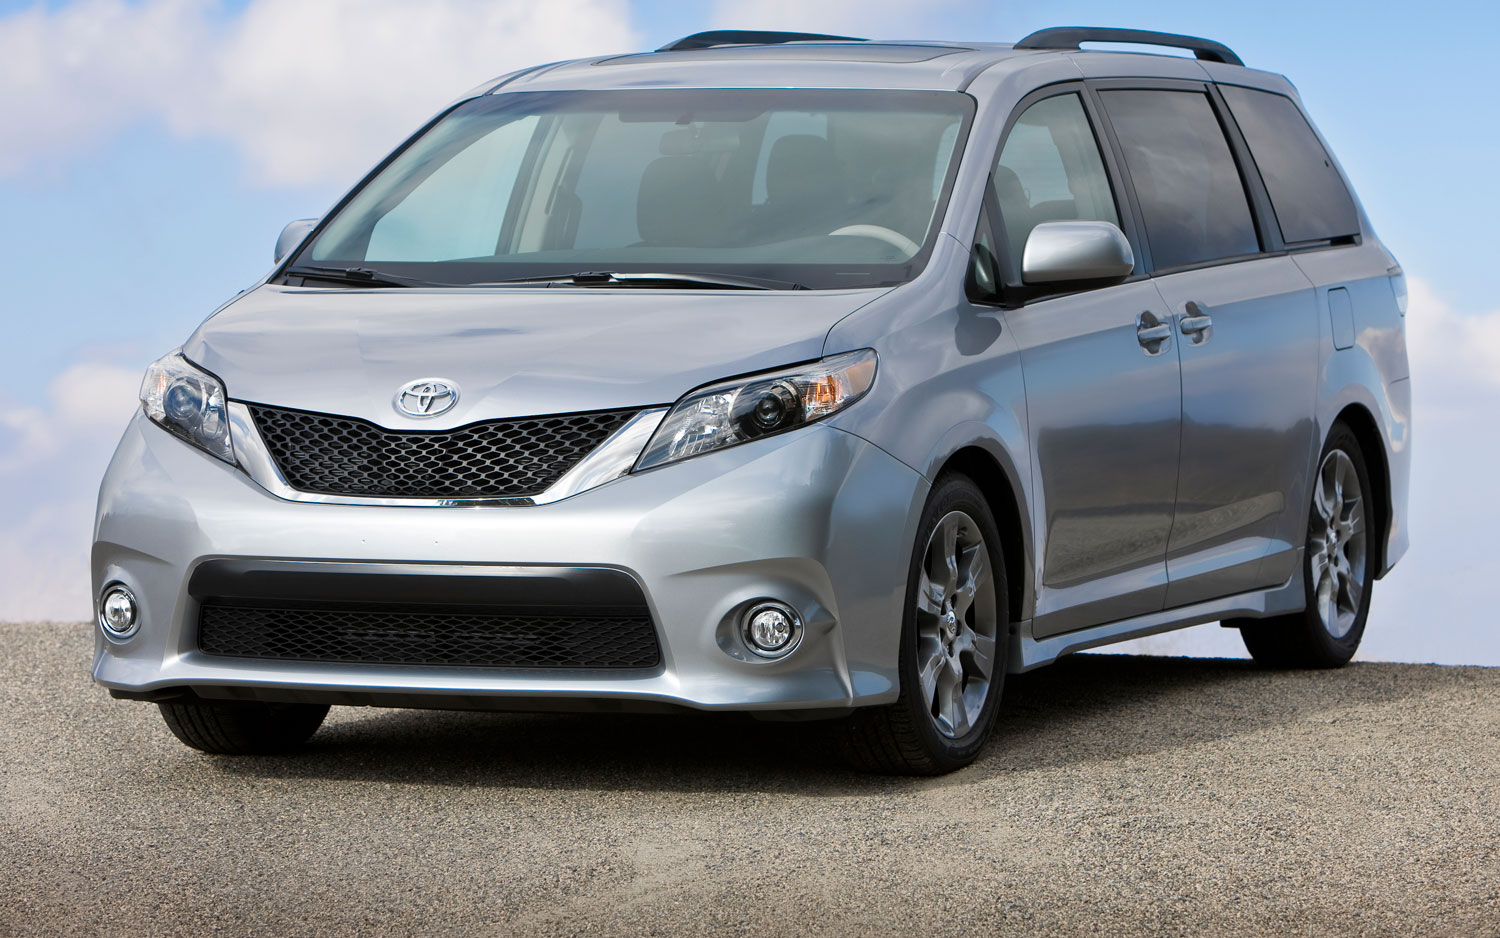 2013 Toyota Sienna Drops I 4 Variant Pricing Revealed On Tacoma Corolla Scion IQ XD